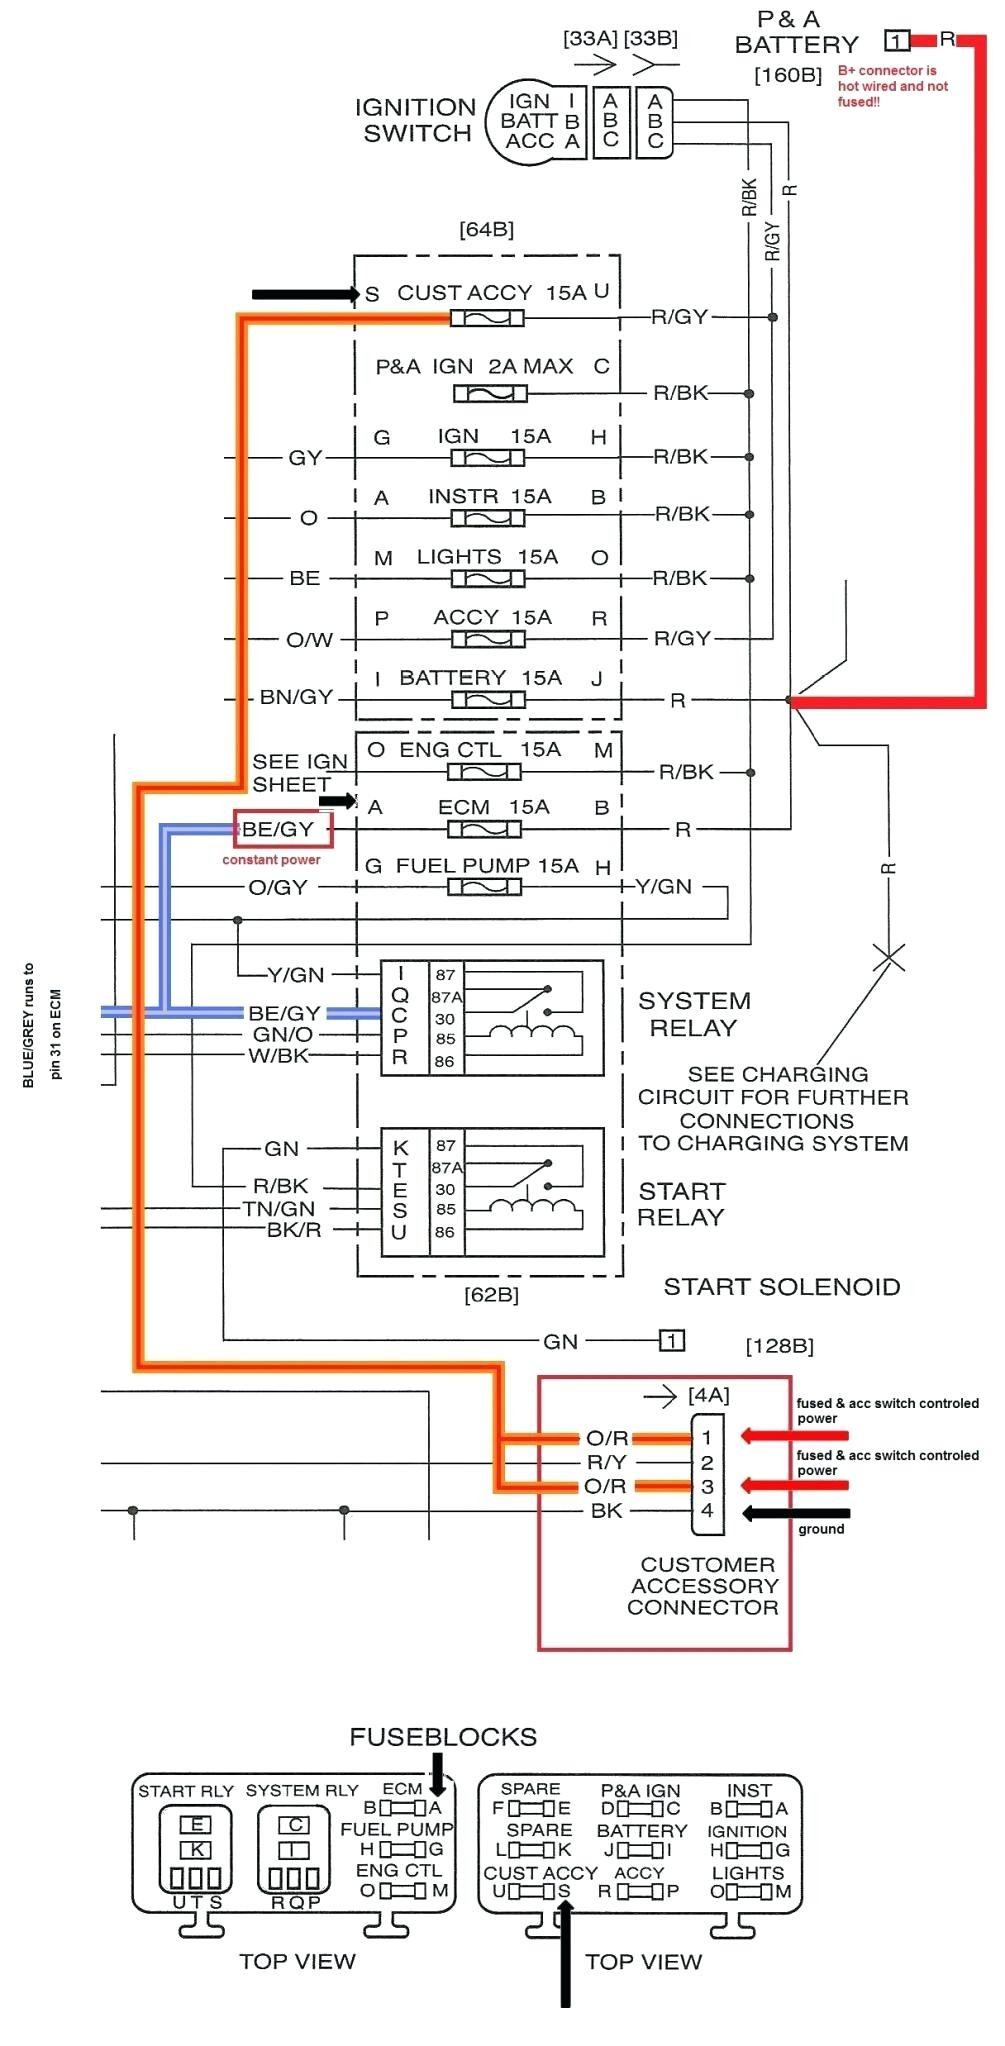 Street Glide Harley Davidson Radio Wiring Harness Diagram ... on